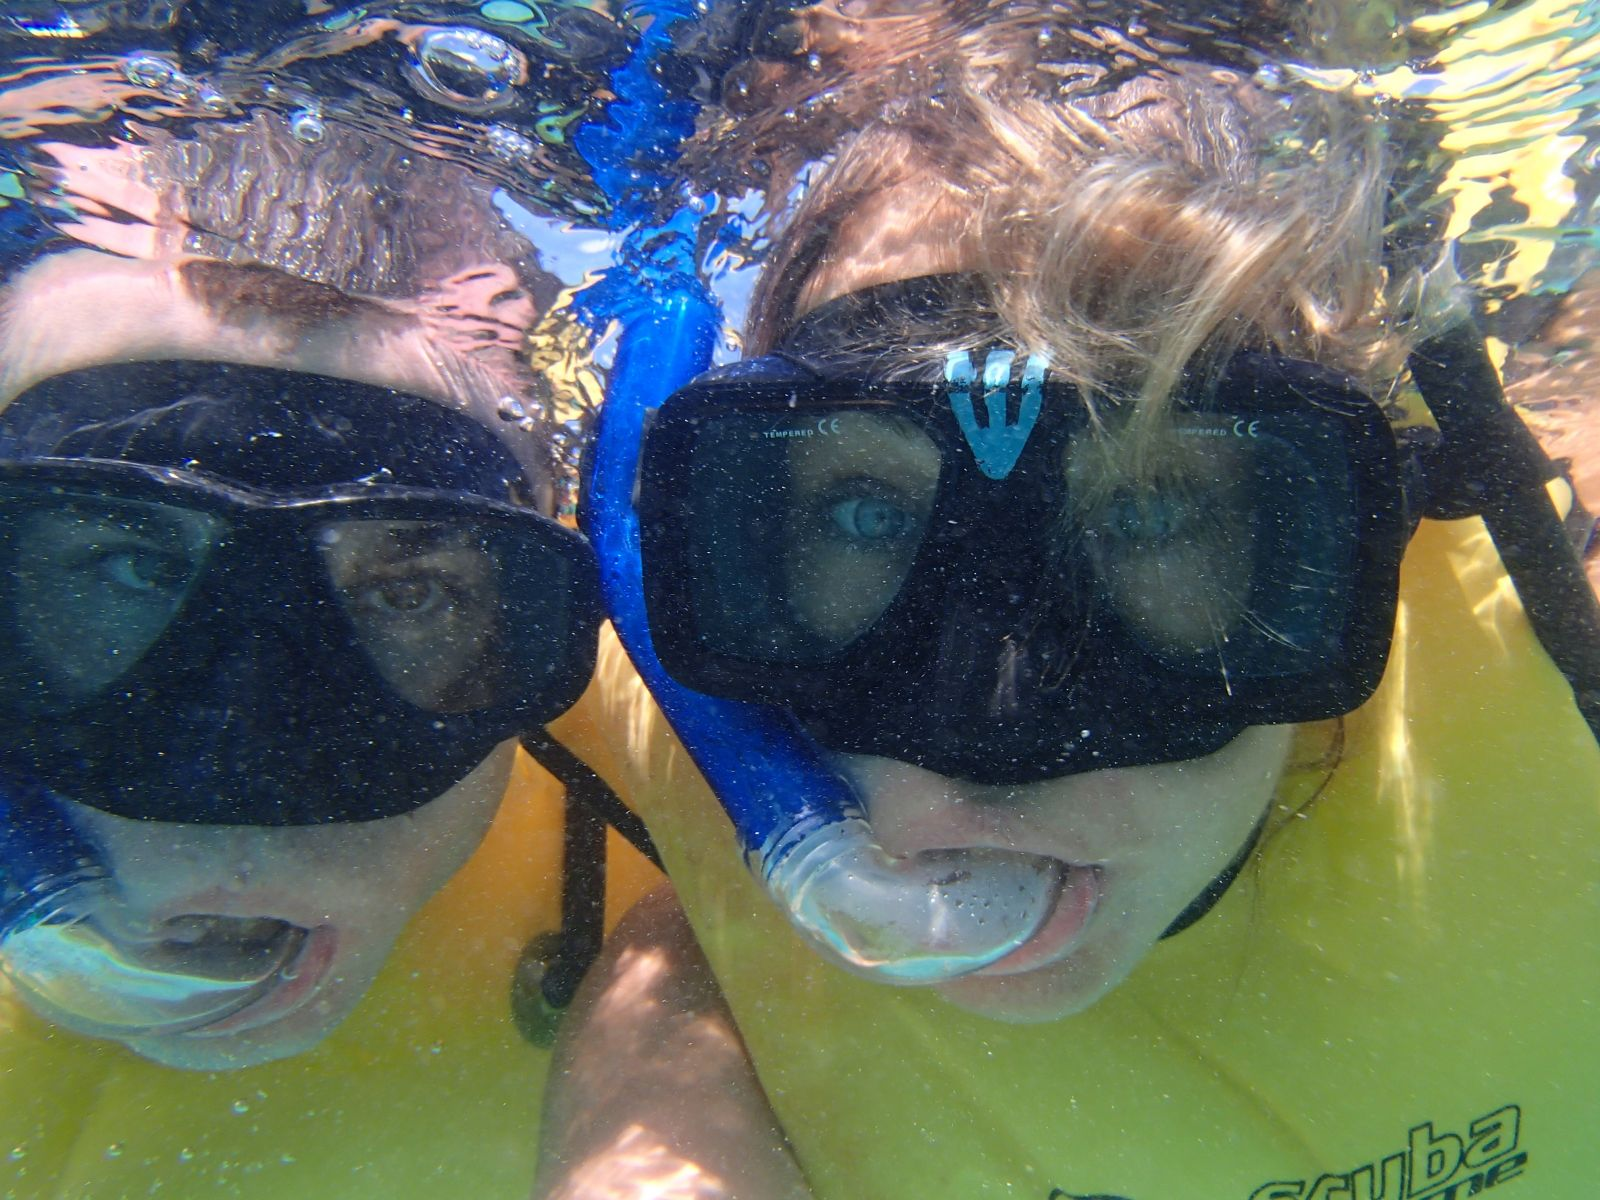 Snorkeling with Sea Turtles in Mexico Selfie!